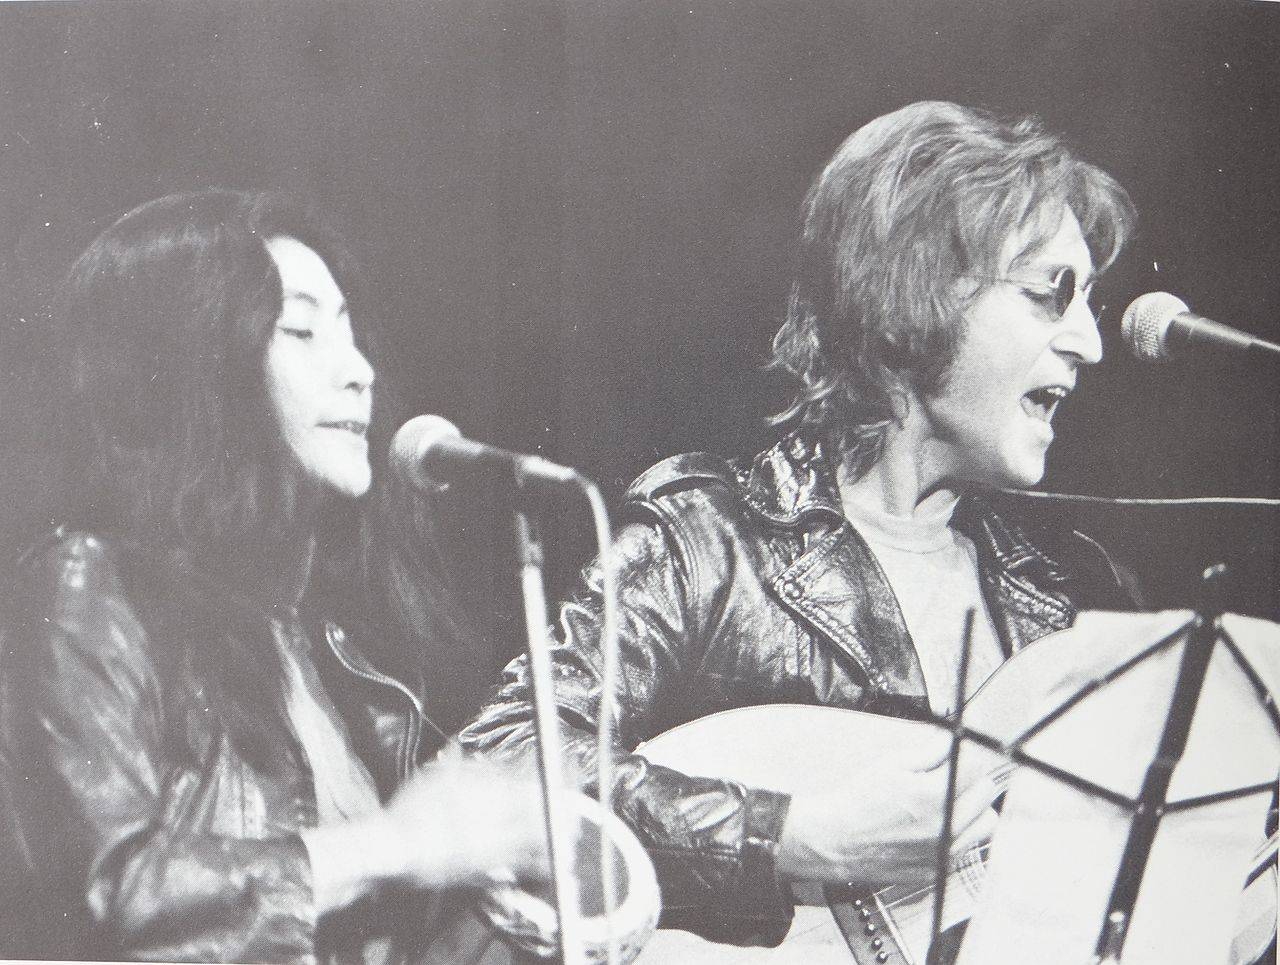 1280px-Yoko_Ono_and_John_Lennon_at_John_Sinclair_Freedom_Rally